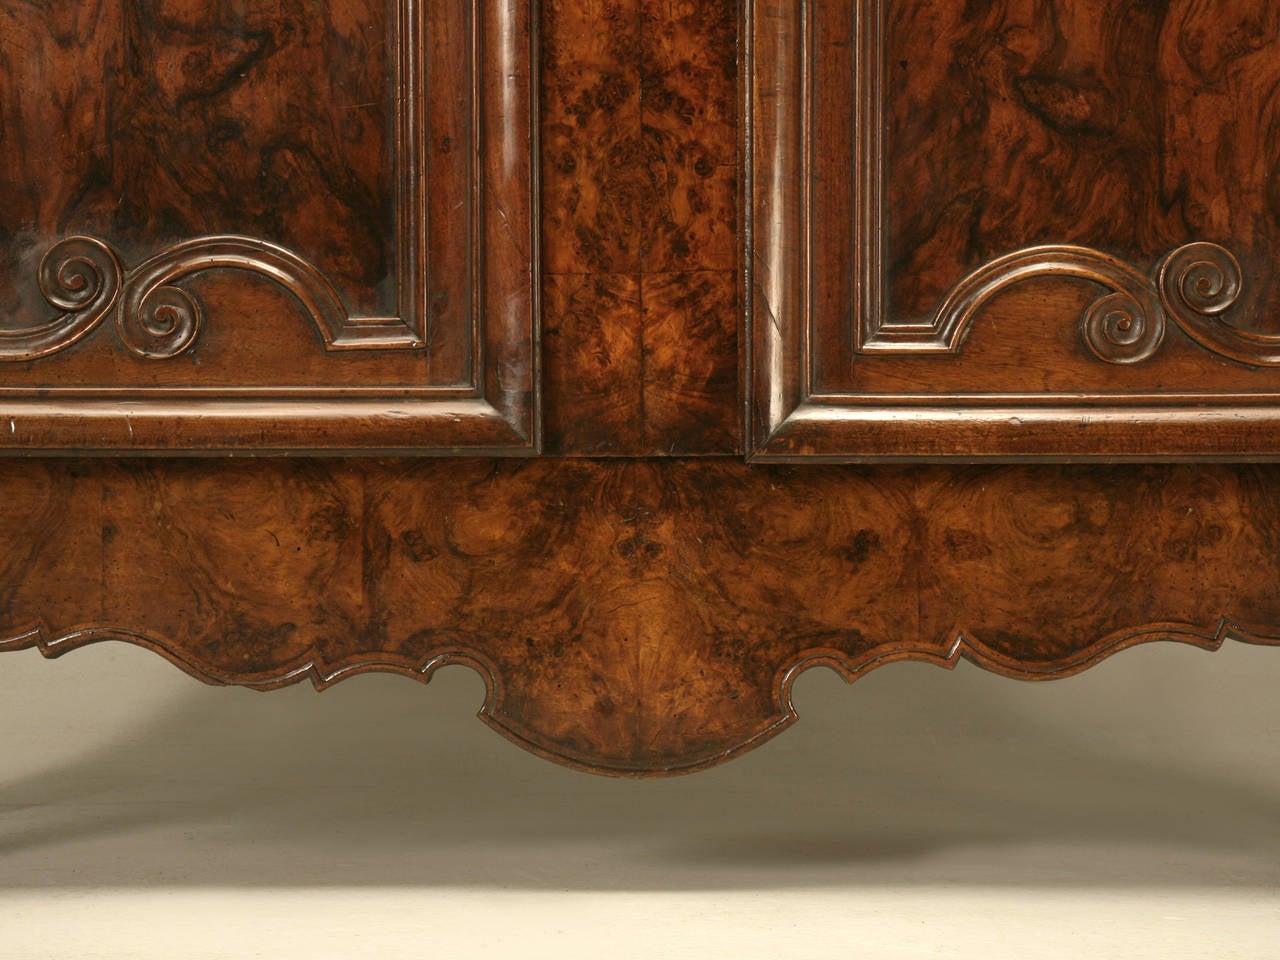 Armoire, French Burl Walnut in the Style of Louis XV Painted and Gilded Hinges 2